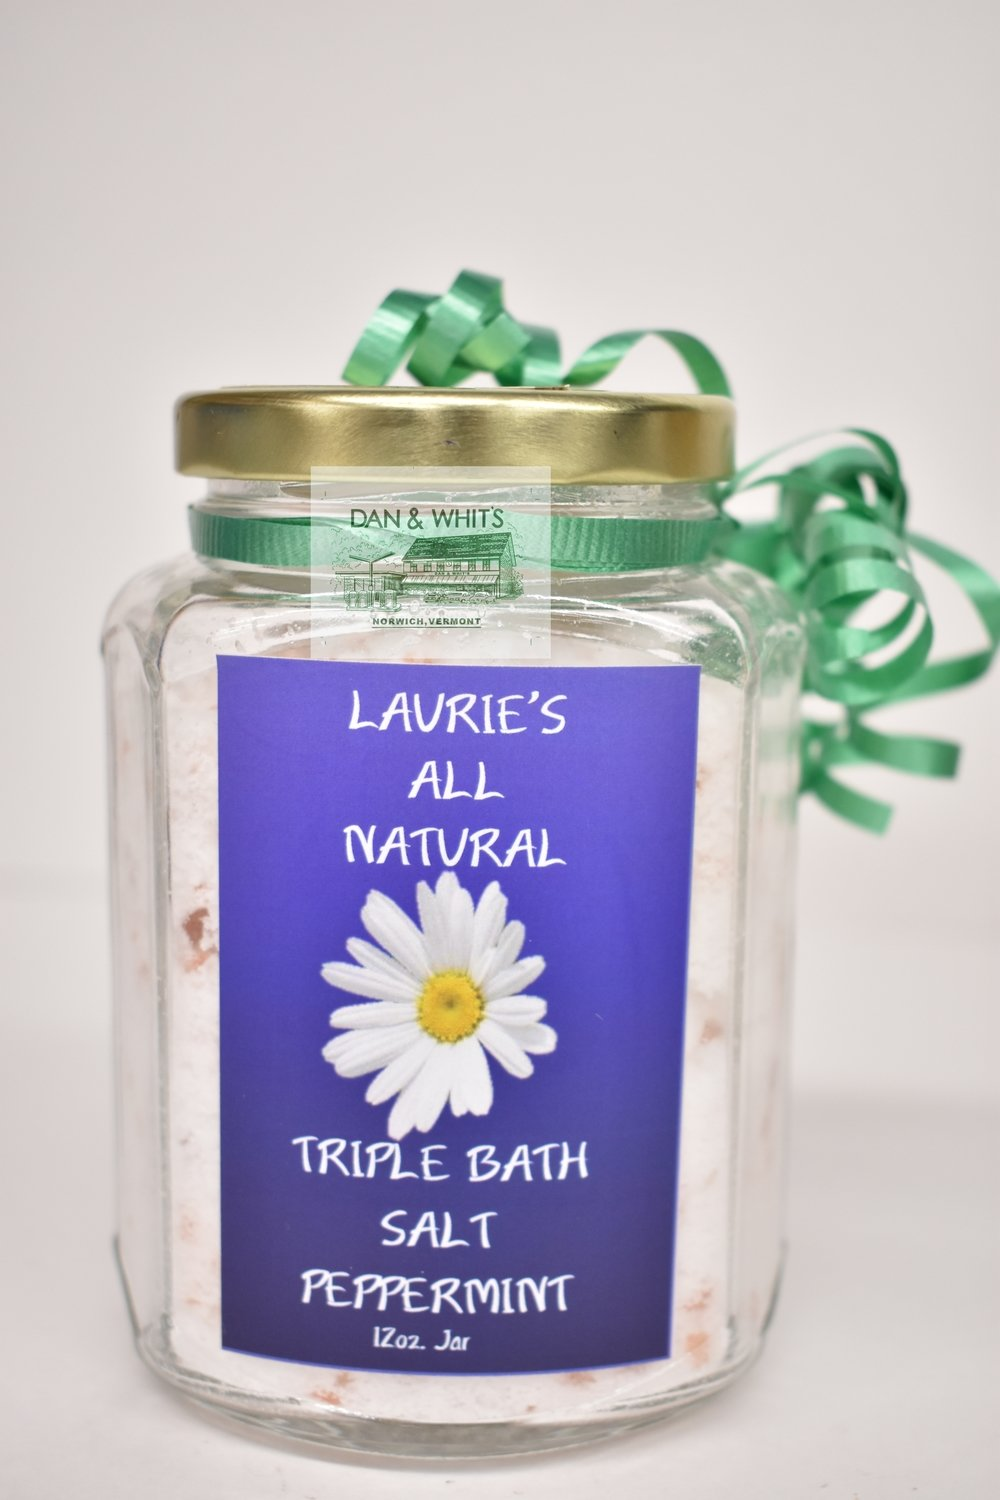 Laurie's All Natural Triple Bath Salt Peppermint 12 oz